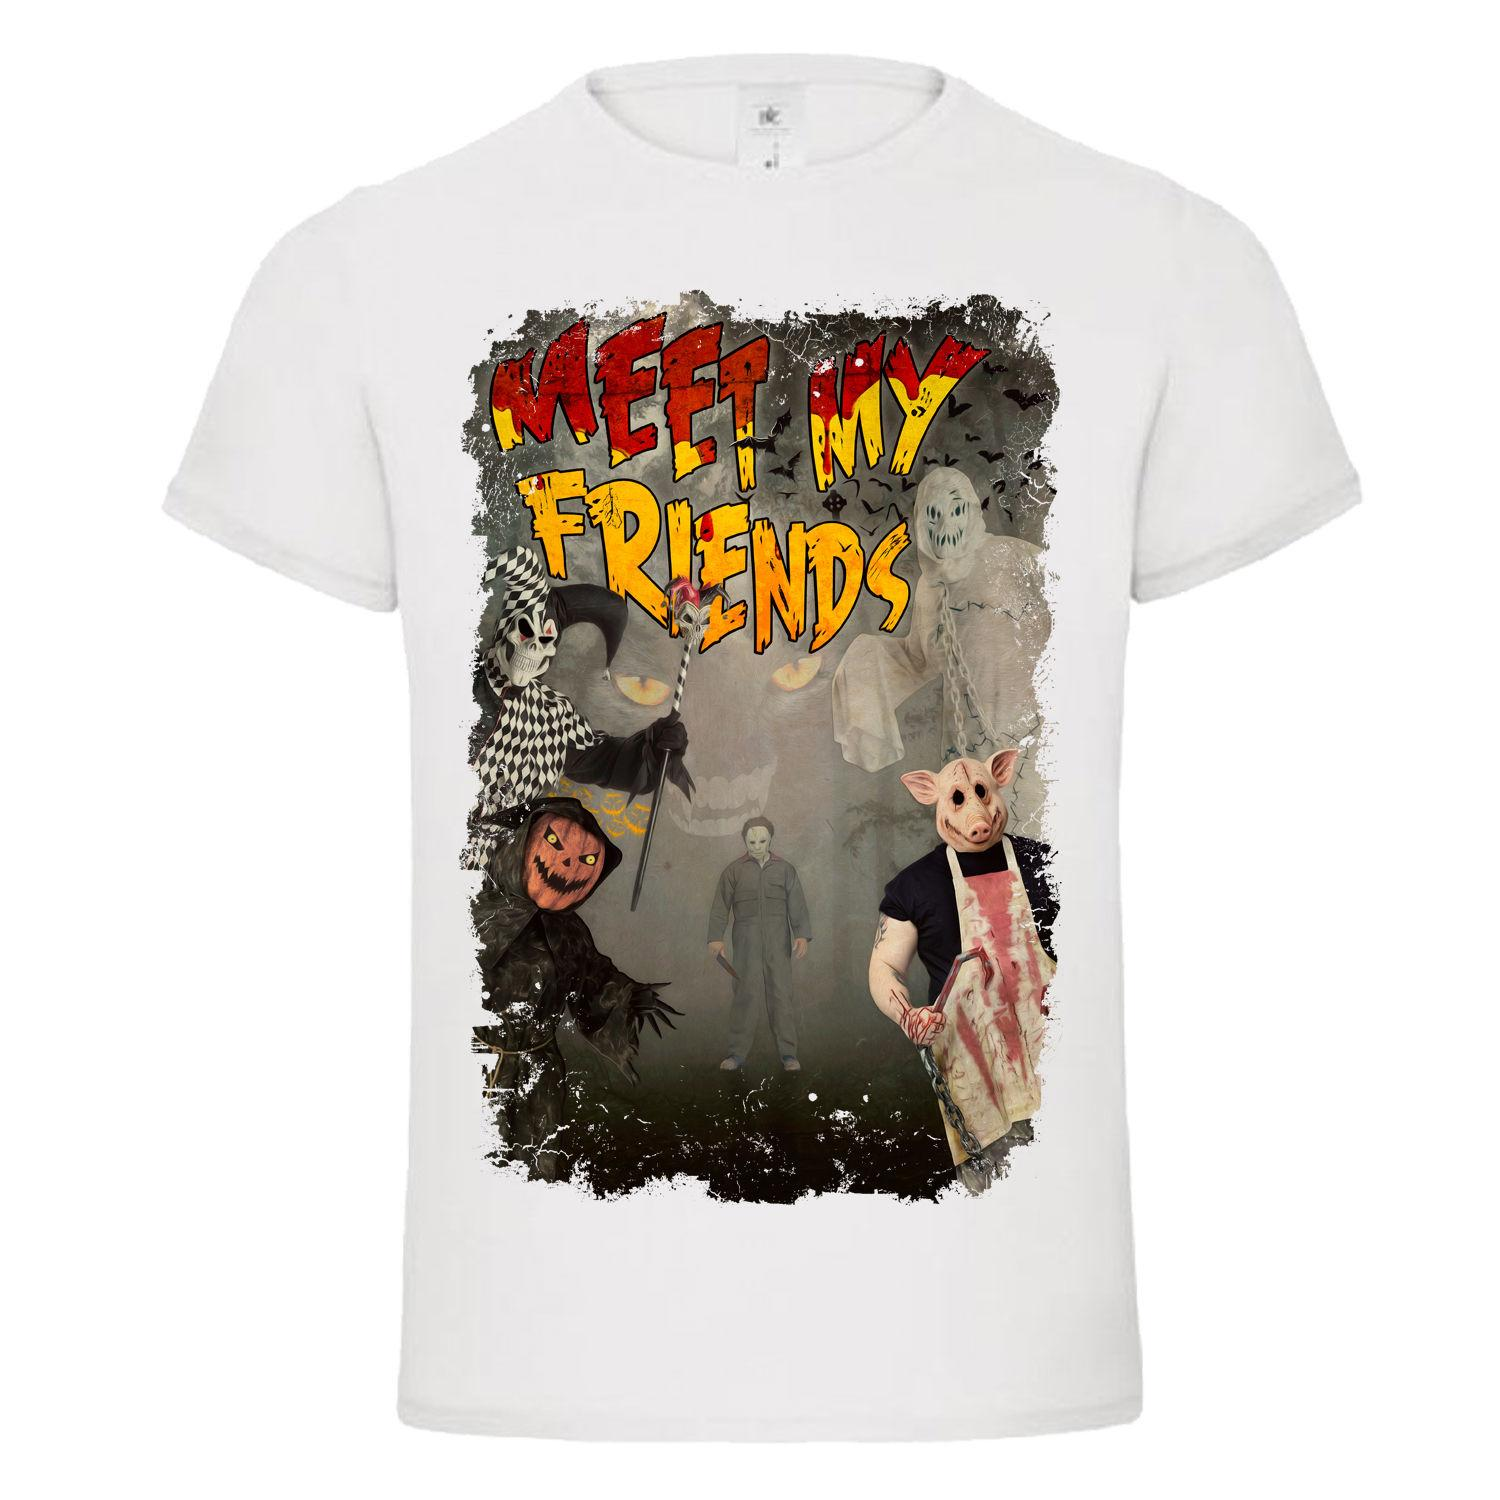 Halloween Friends Shirt.Meet My Friends Halloween Jester Michael Myers Butcher Pig Dtg Mens T Shirt Tee Summer O Neck Tee Free Shipping Cheap Tee 2019 Hot Tees